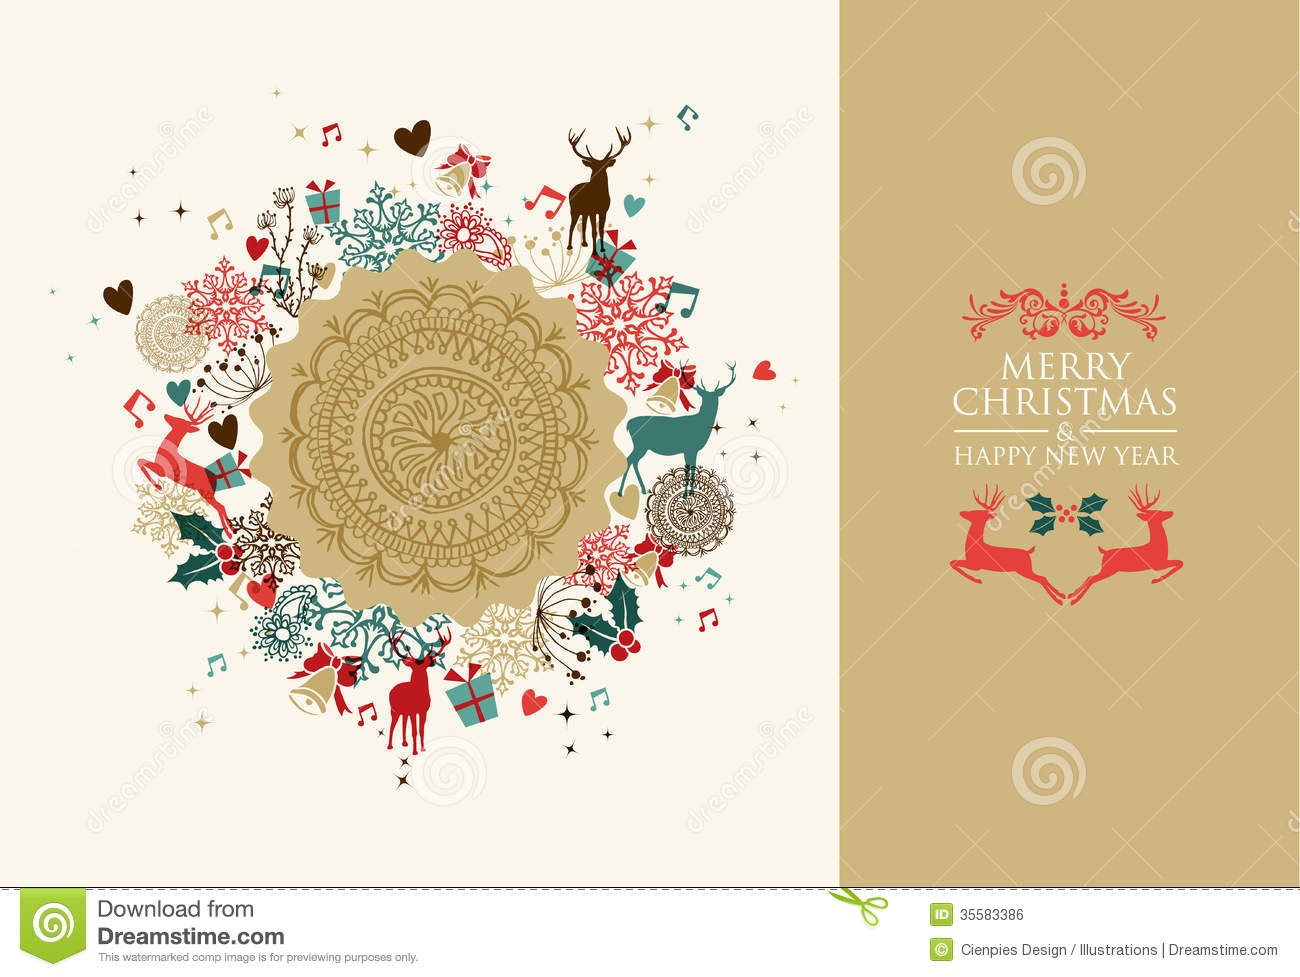 Merry Christmas Vintage Circle Composition Royalty Free Stock ...